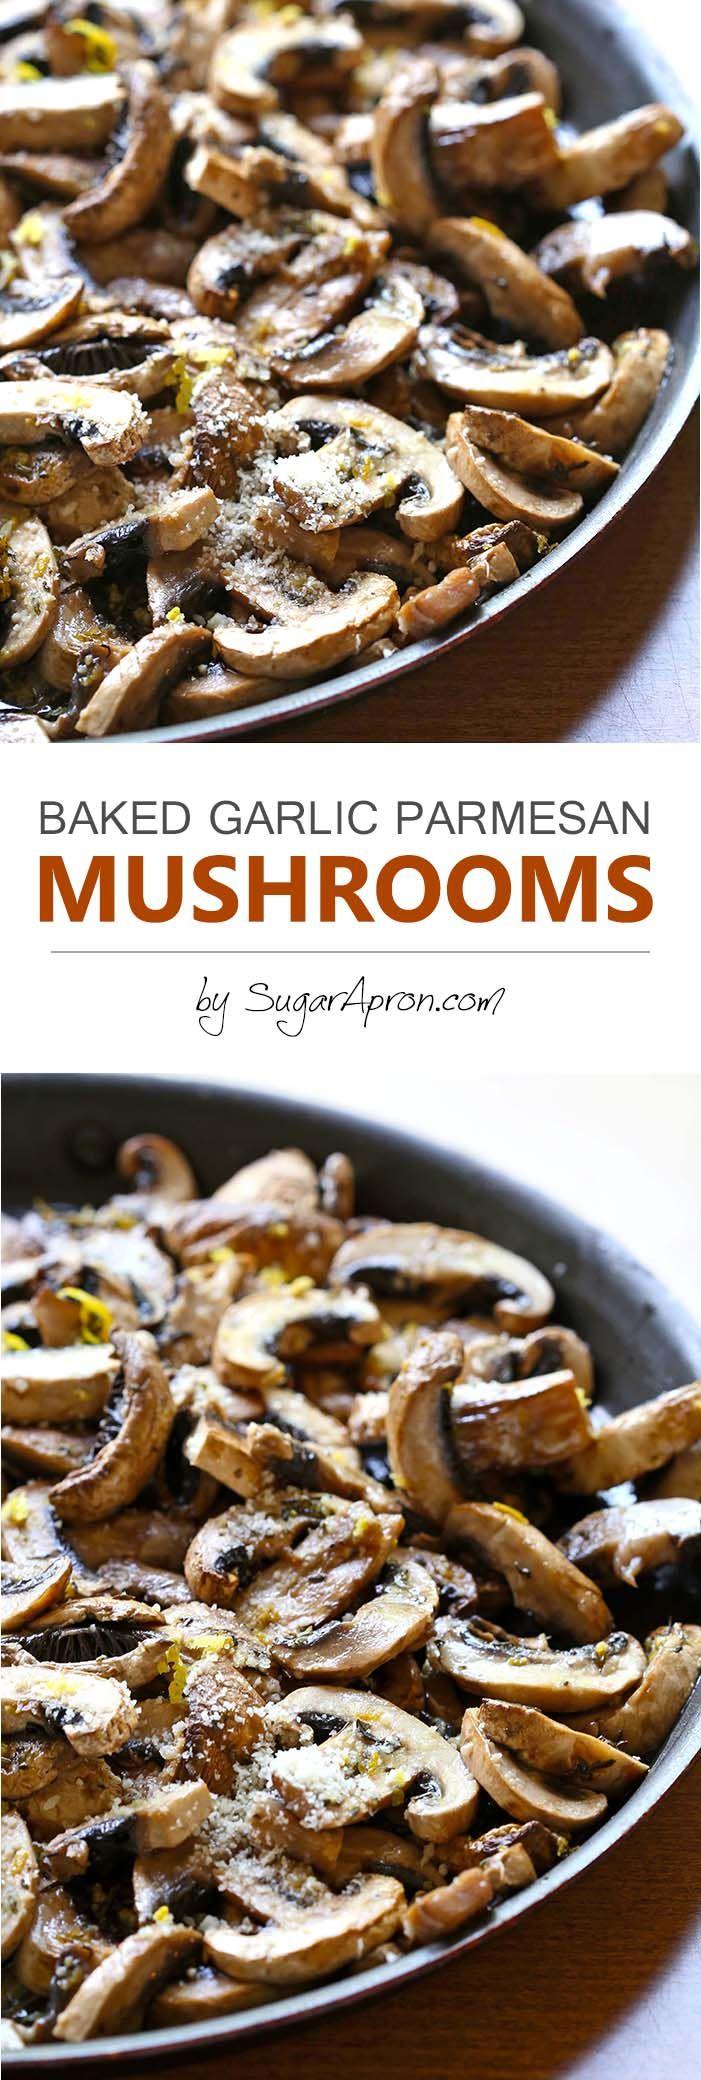 Baked Garlic Parmesan Mushrooms is one of those everyone-should-know-how-to-make recipes. It's easy and comes together quickly.